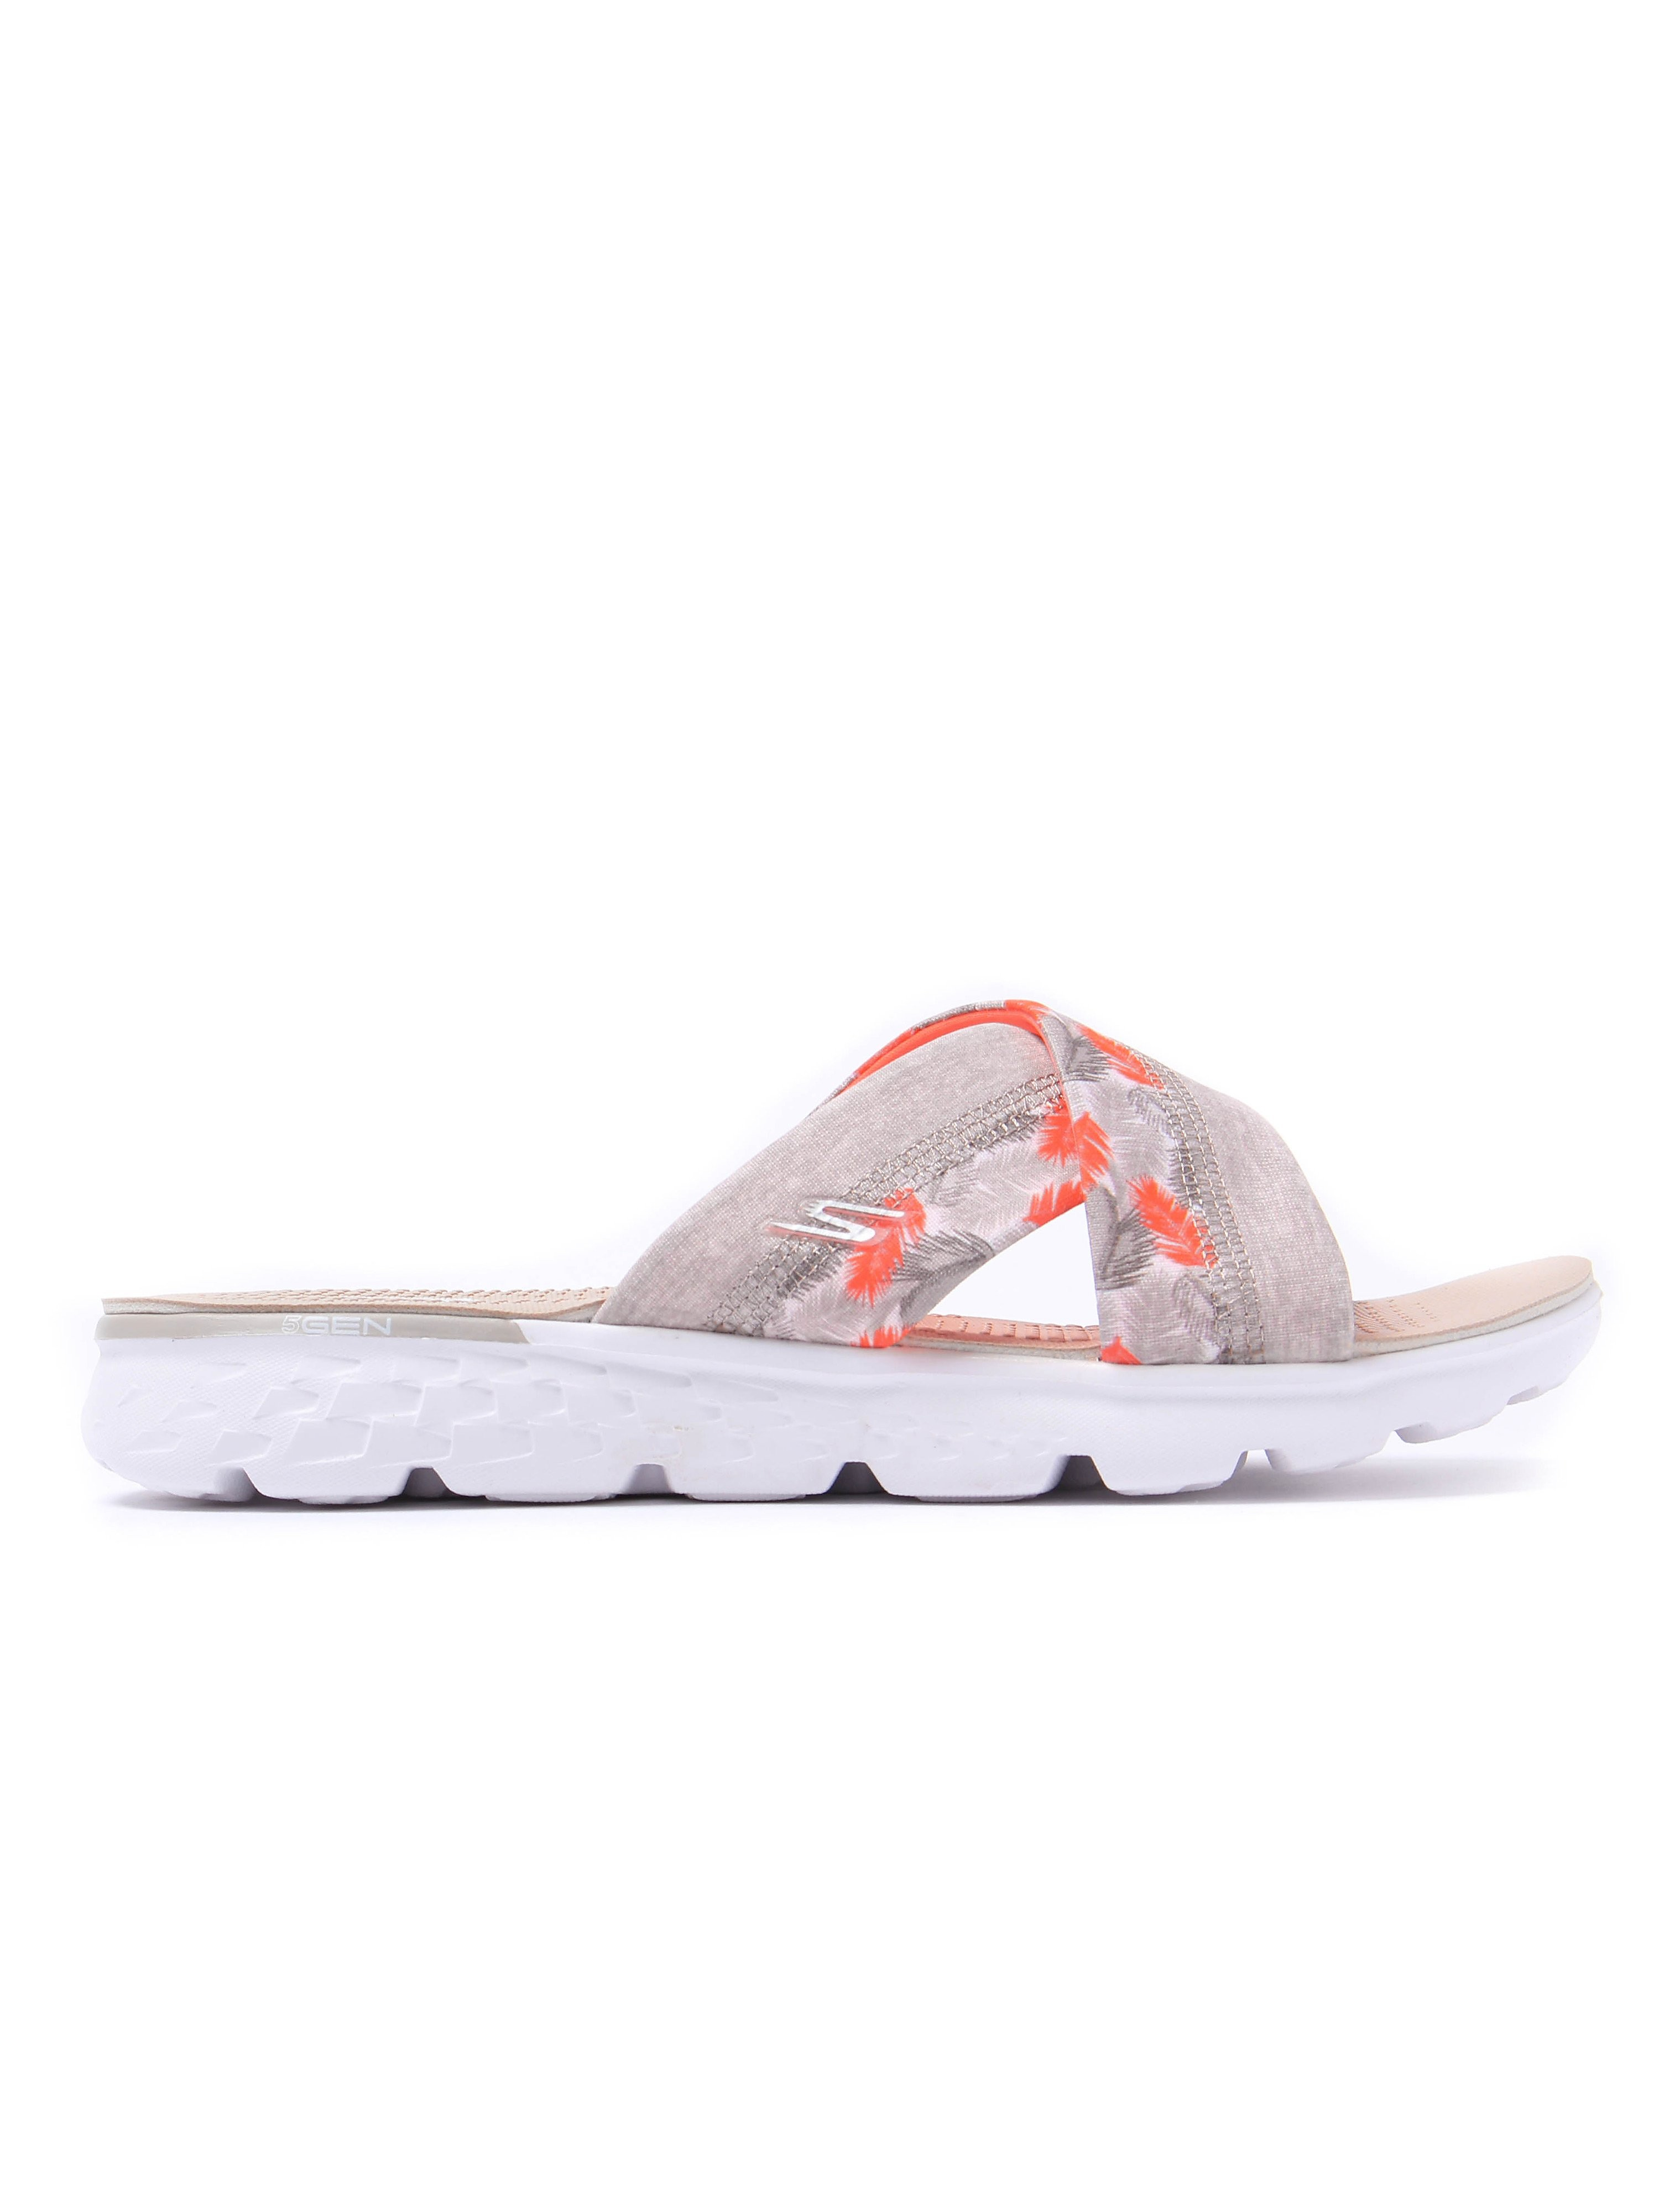 Skechers Women's On-The-Go 400 Tropical Print Slip-On Sandals - Natural & Coral